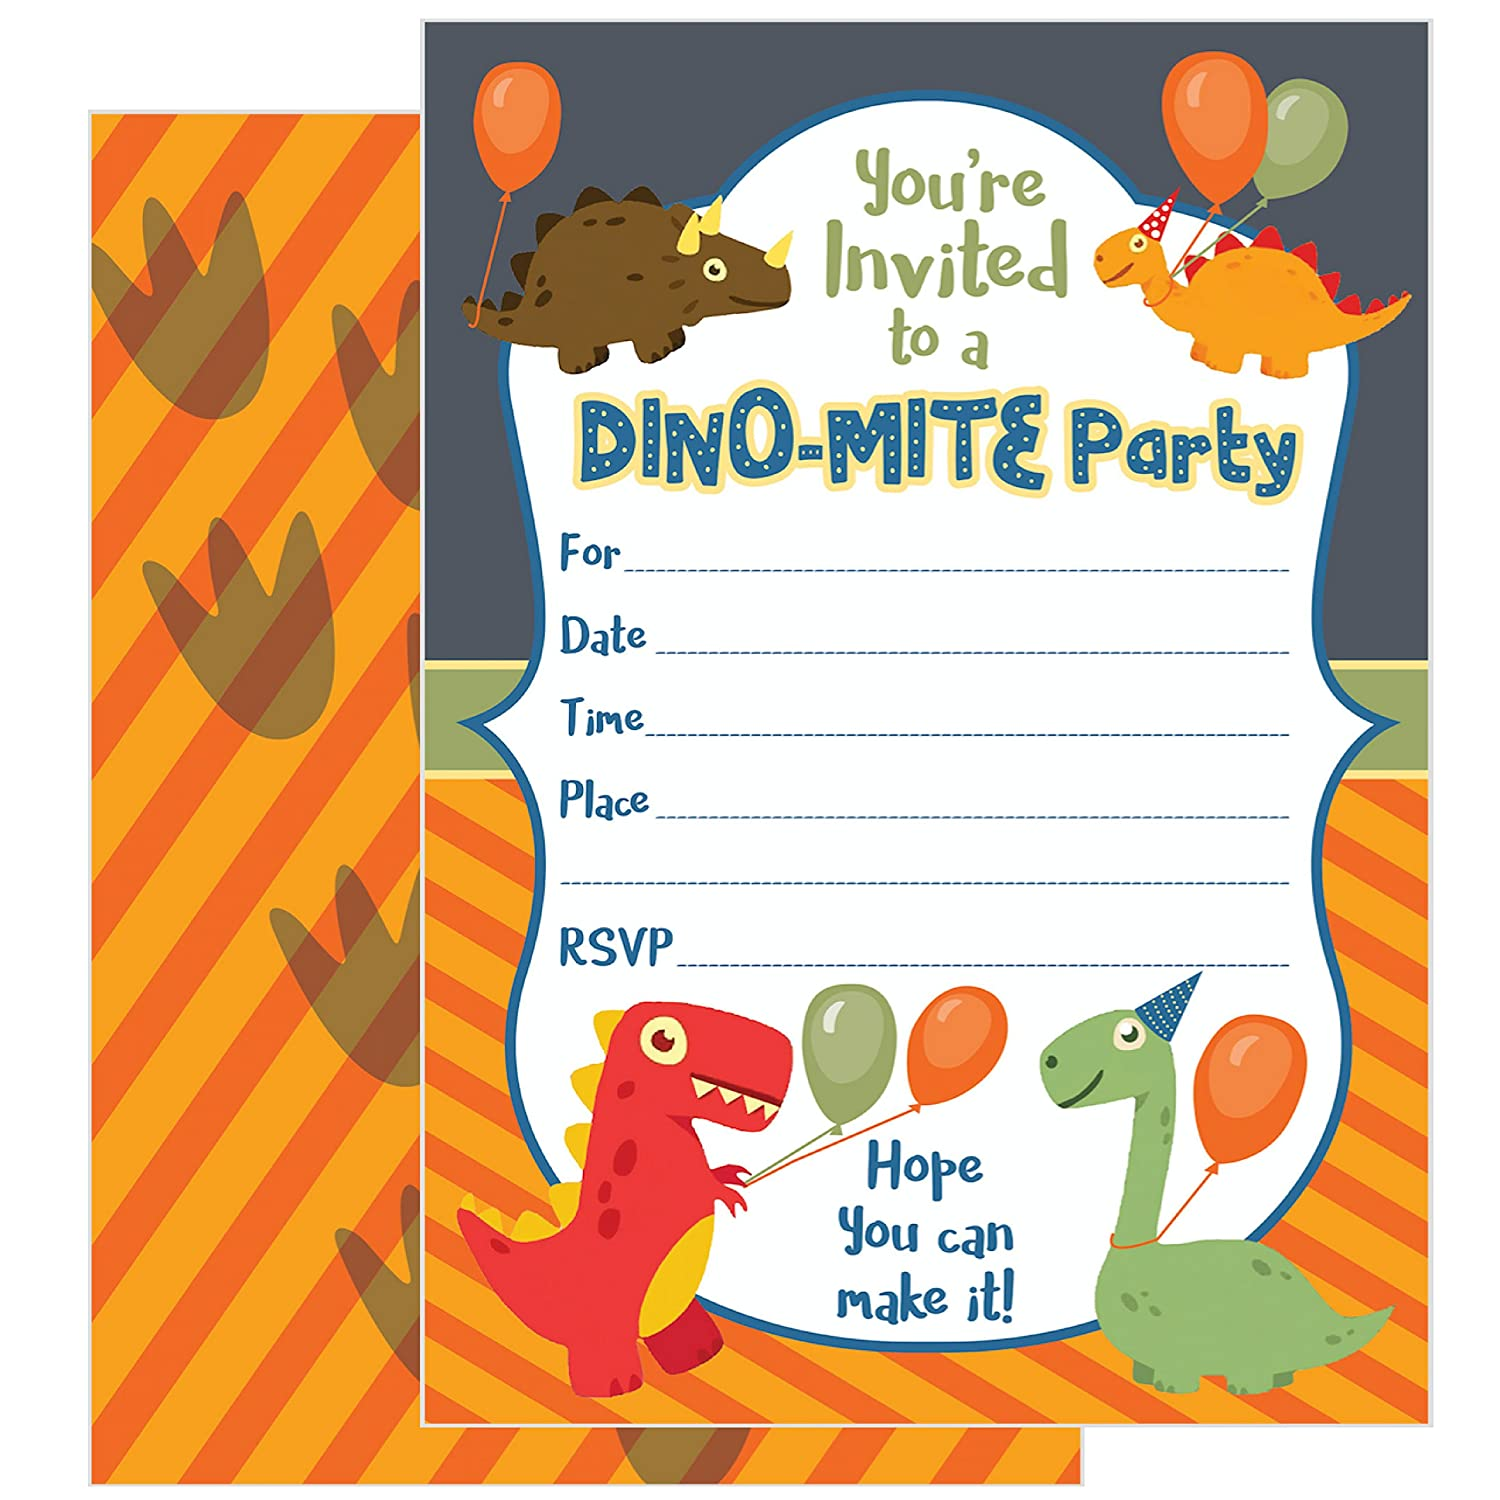 ZOLCO Prints 25 Dinosaur Birthday Invitations with Envelopes – These Kids Party Invitation Cards 5x7 inch are a Great Way to Tell Everyone About Your Boys or Girls Dino Theme Party